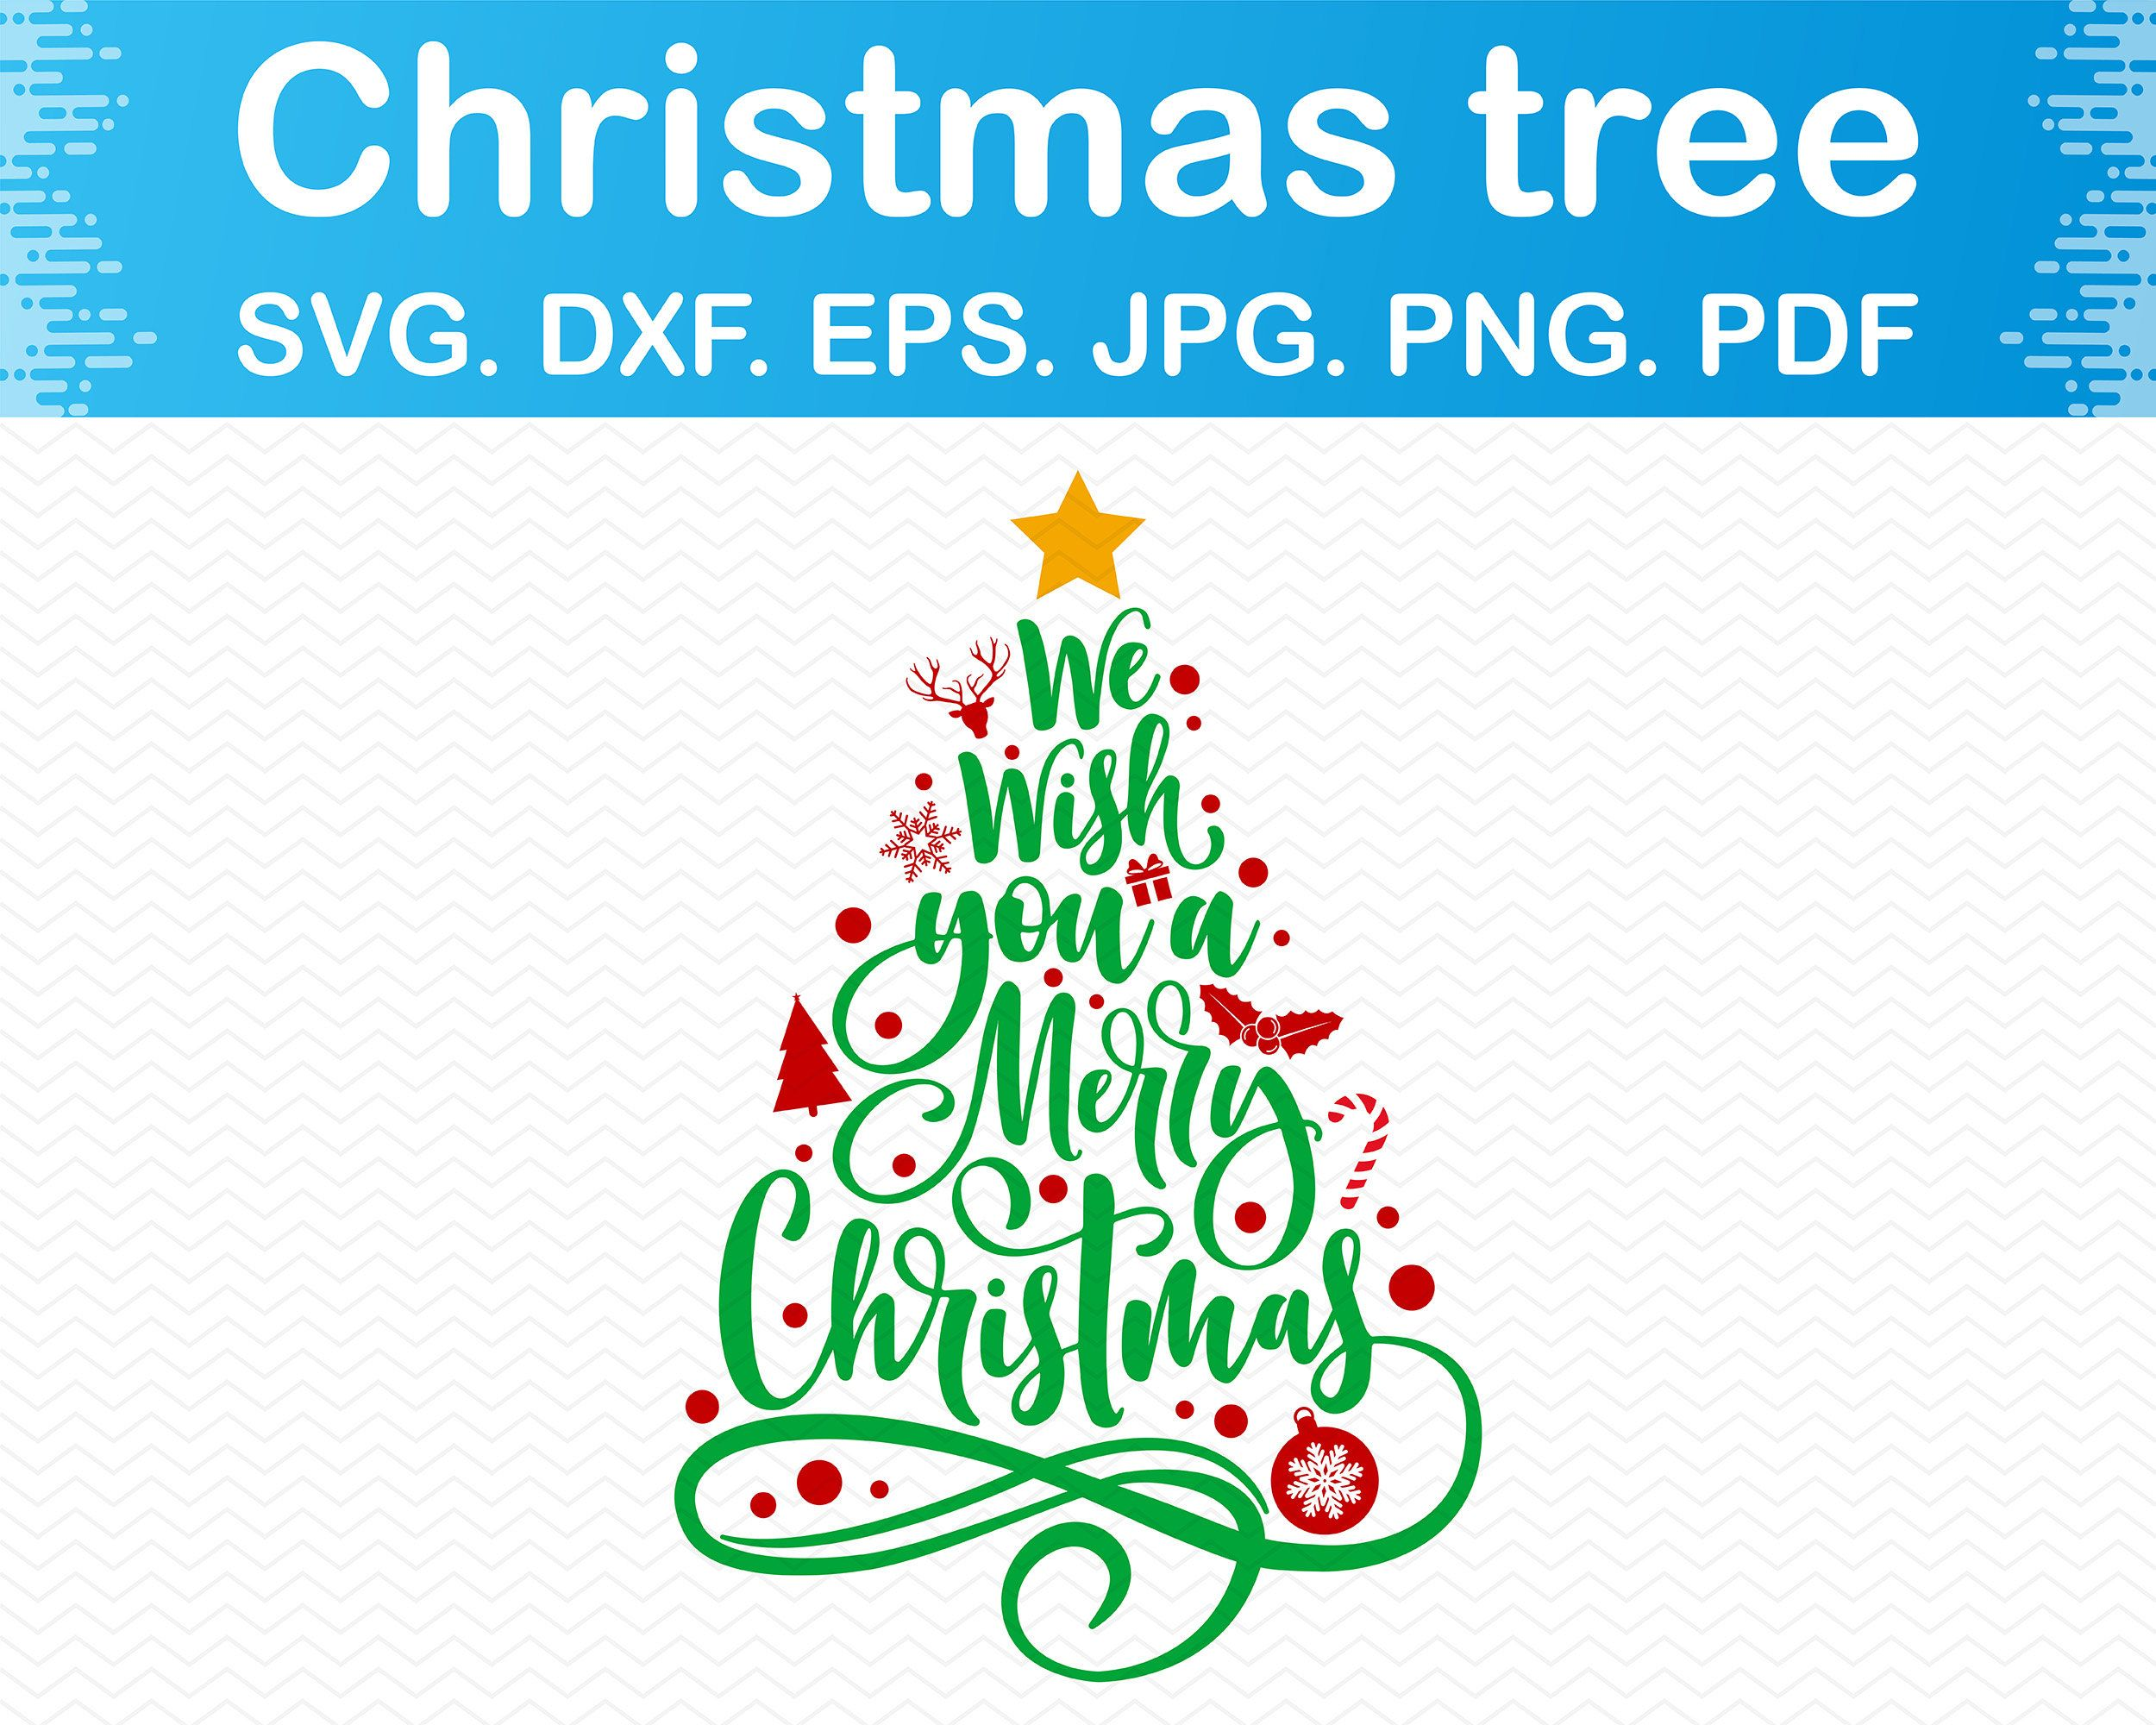 Merry Christmas Tree Svg Merry Christmas Trees Png Merry Christmas Svg Bundle Christmas Clipart Silhouette Cricut Dxf Files Vector In 2020 Tree Svg Christmas Clipart Svg